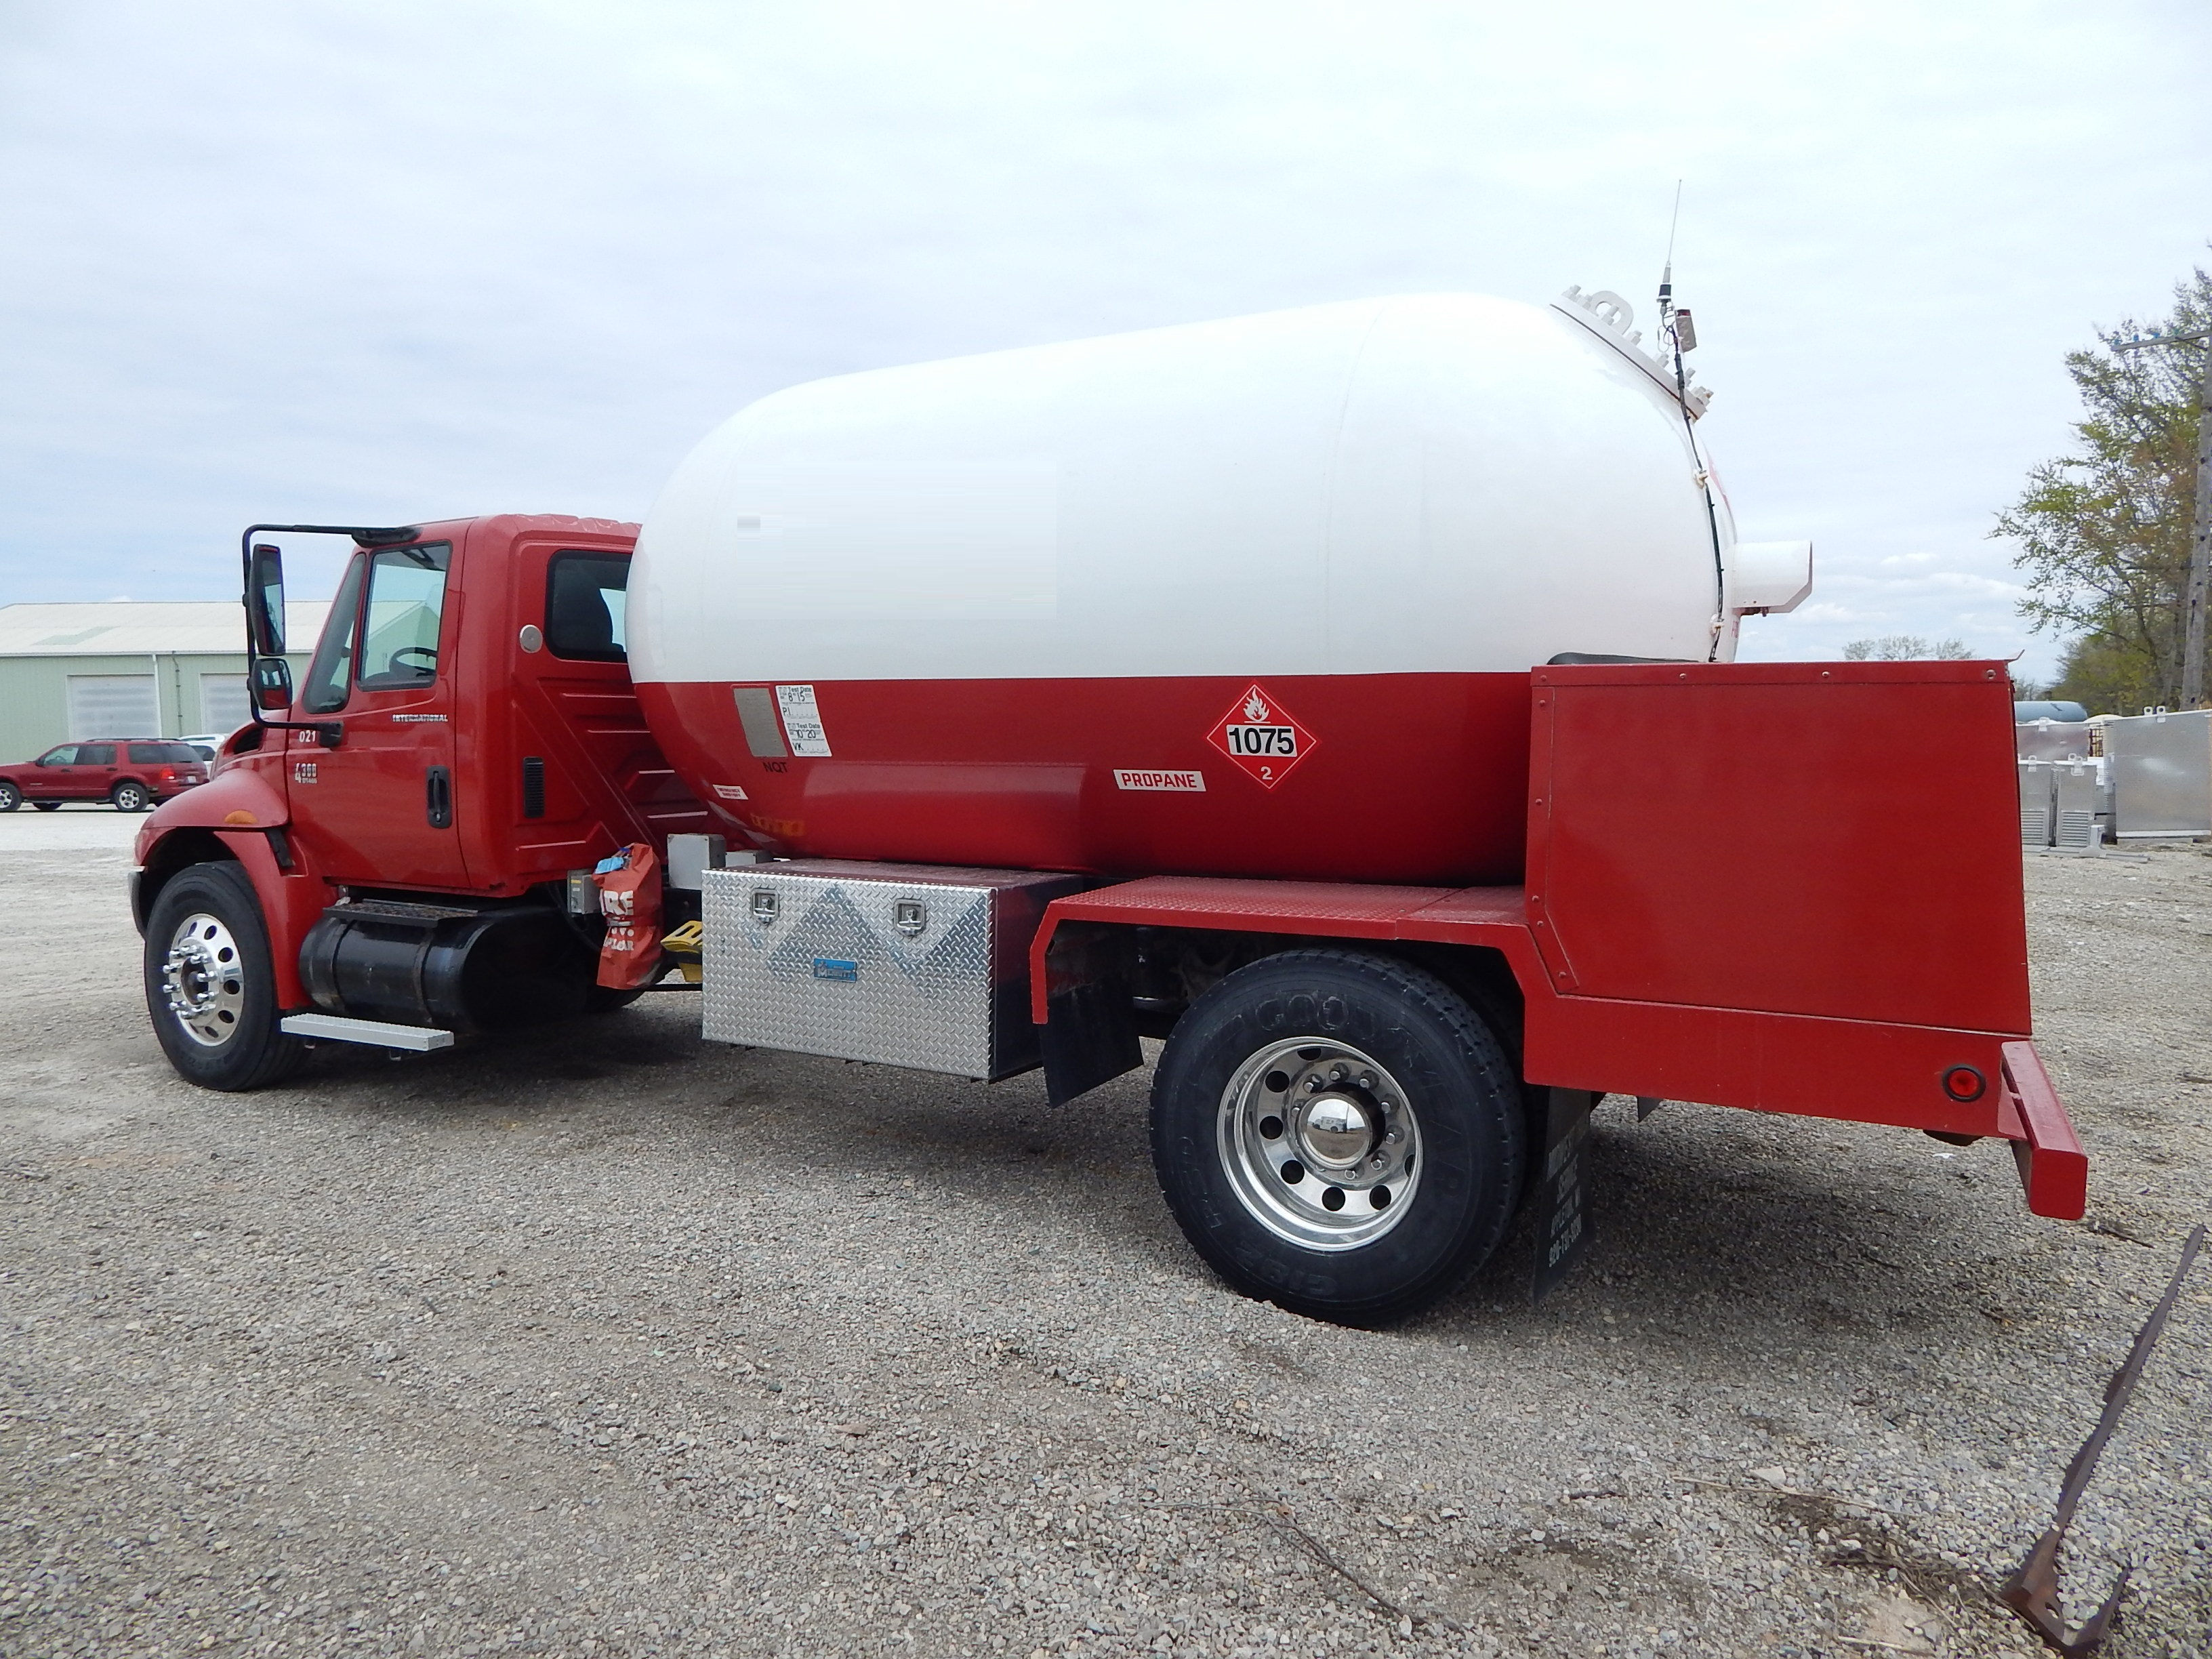 Used propane delivery truck for sale